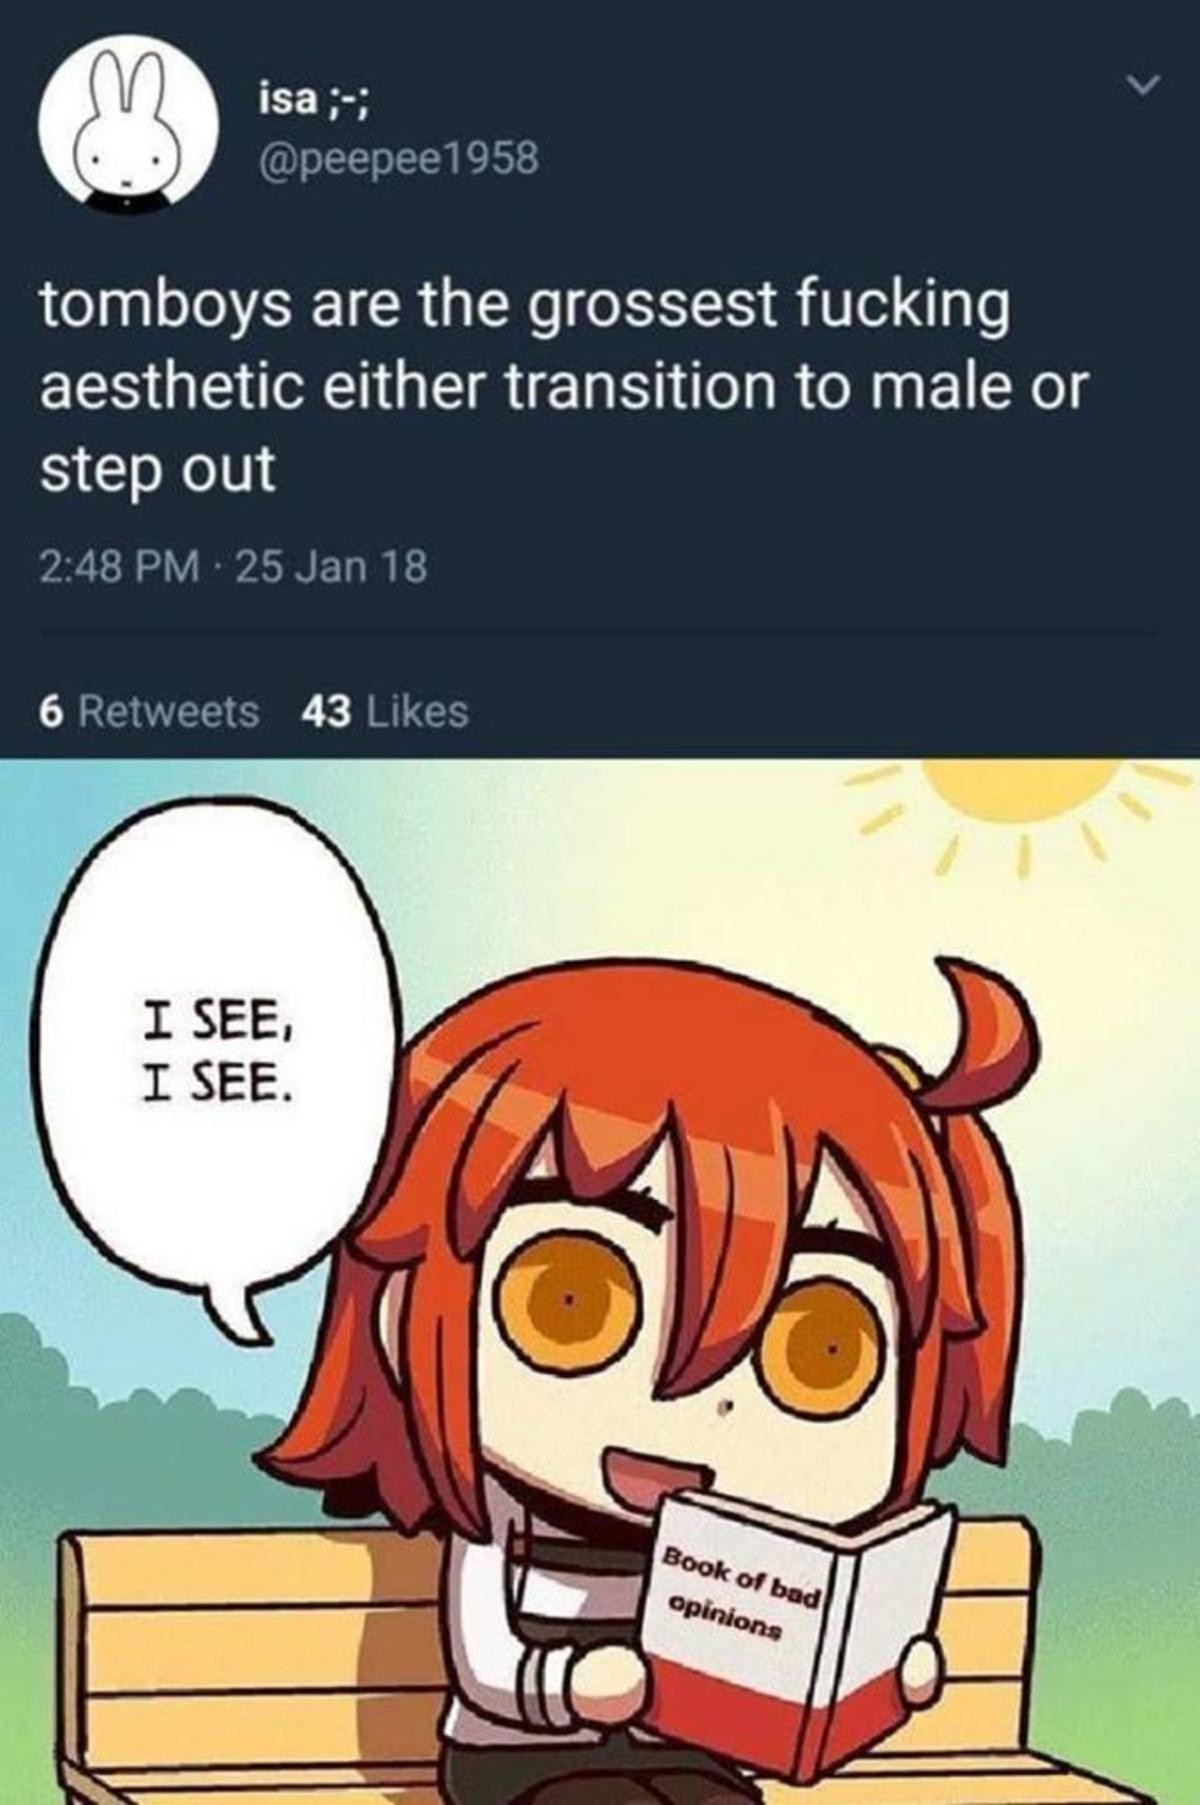 """Book of bad. . tomboys are the grossest fucking aesthetic either transition to male or step out. """"I'm a girl but I like doing things usually done by boys. However I still like being a girl as I'm comfortable with who I am."""" """"Ugh! Just become"""